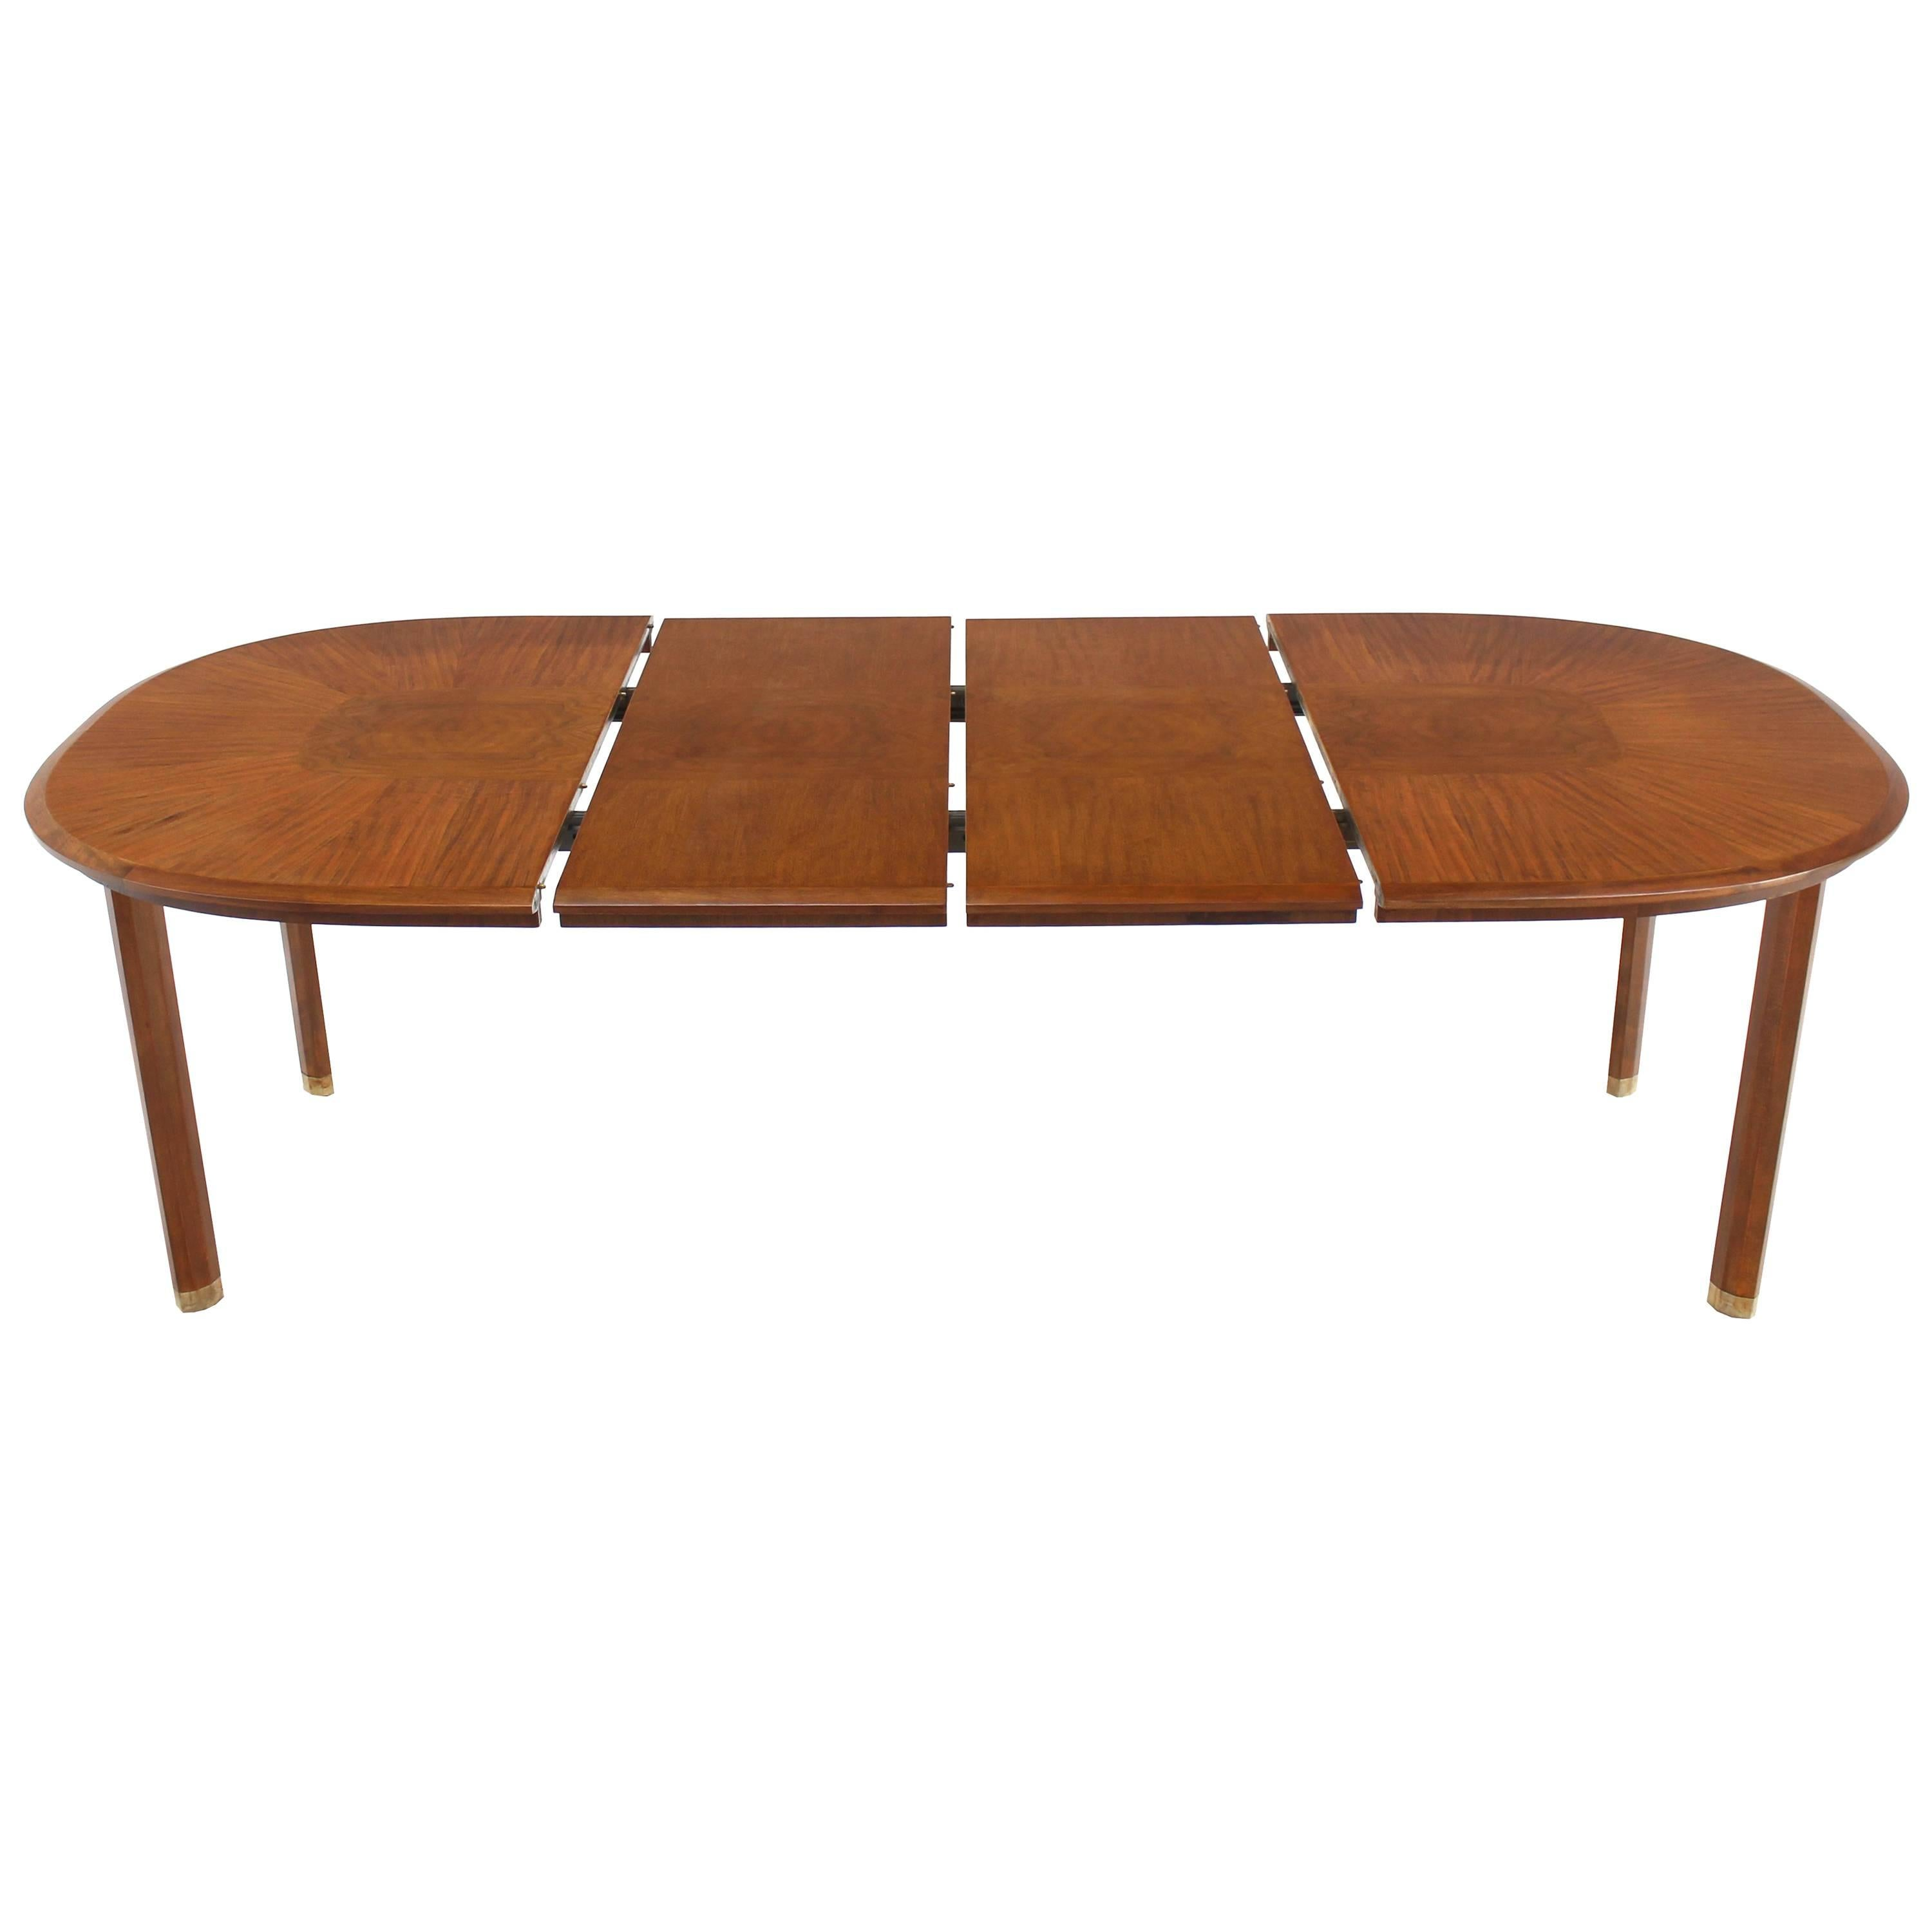 Dining Table With Leaves By Landstrom For Sale At 1stdibs